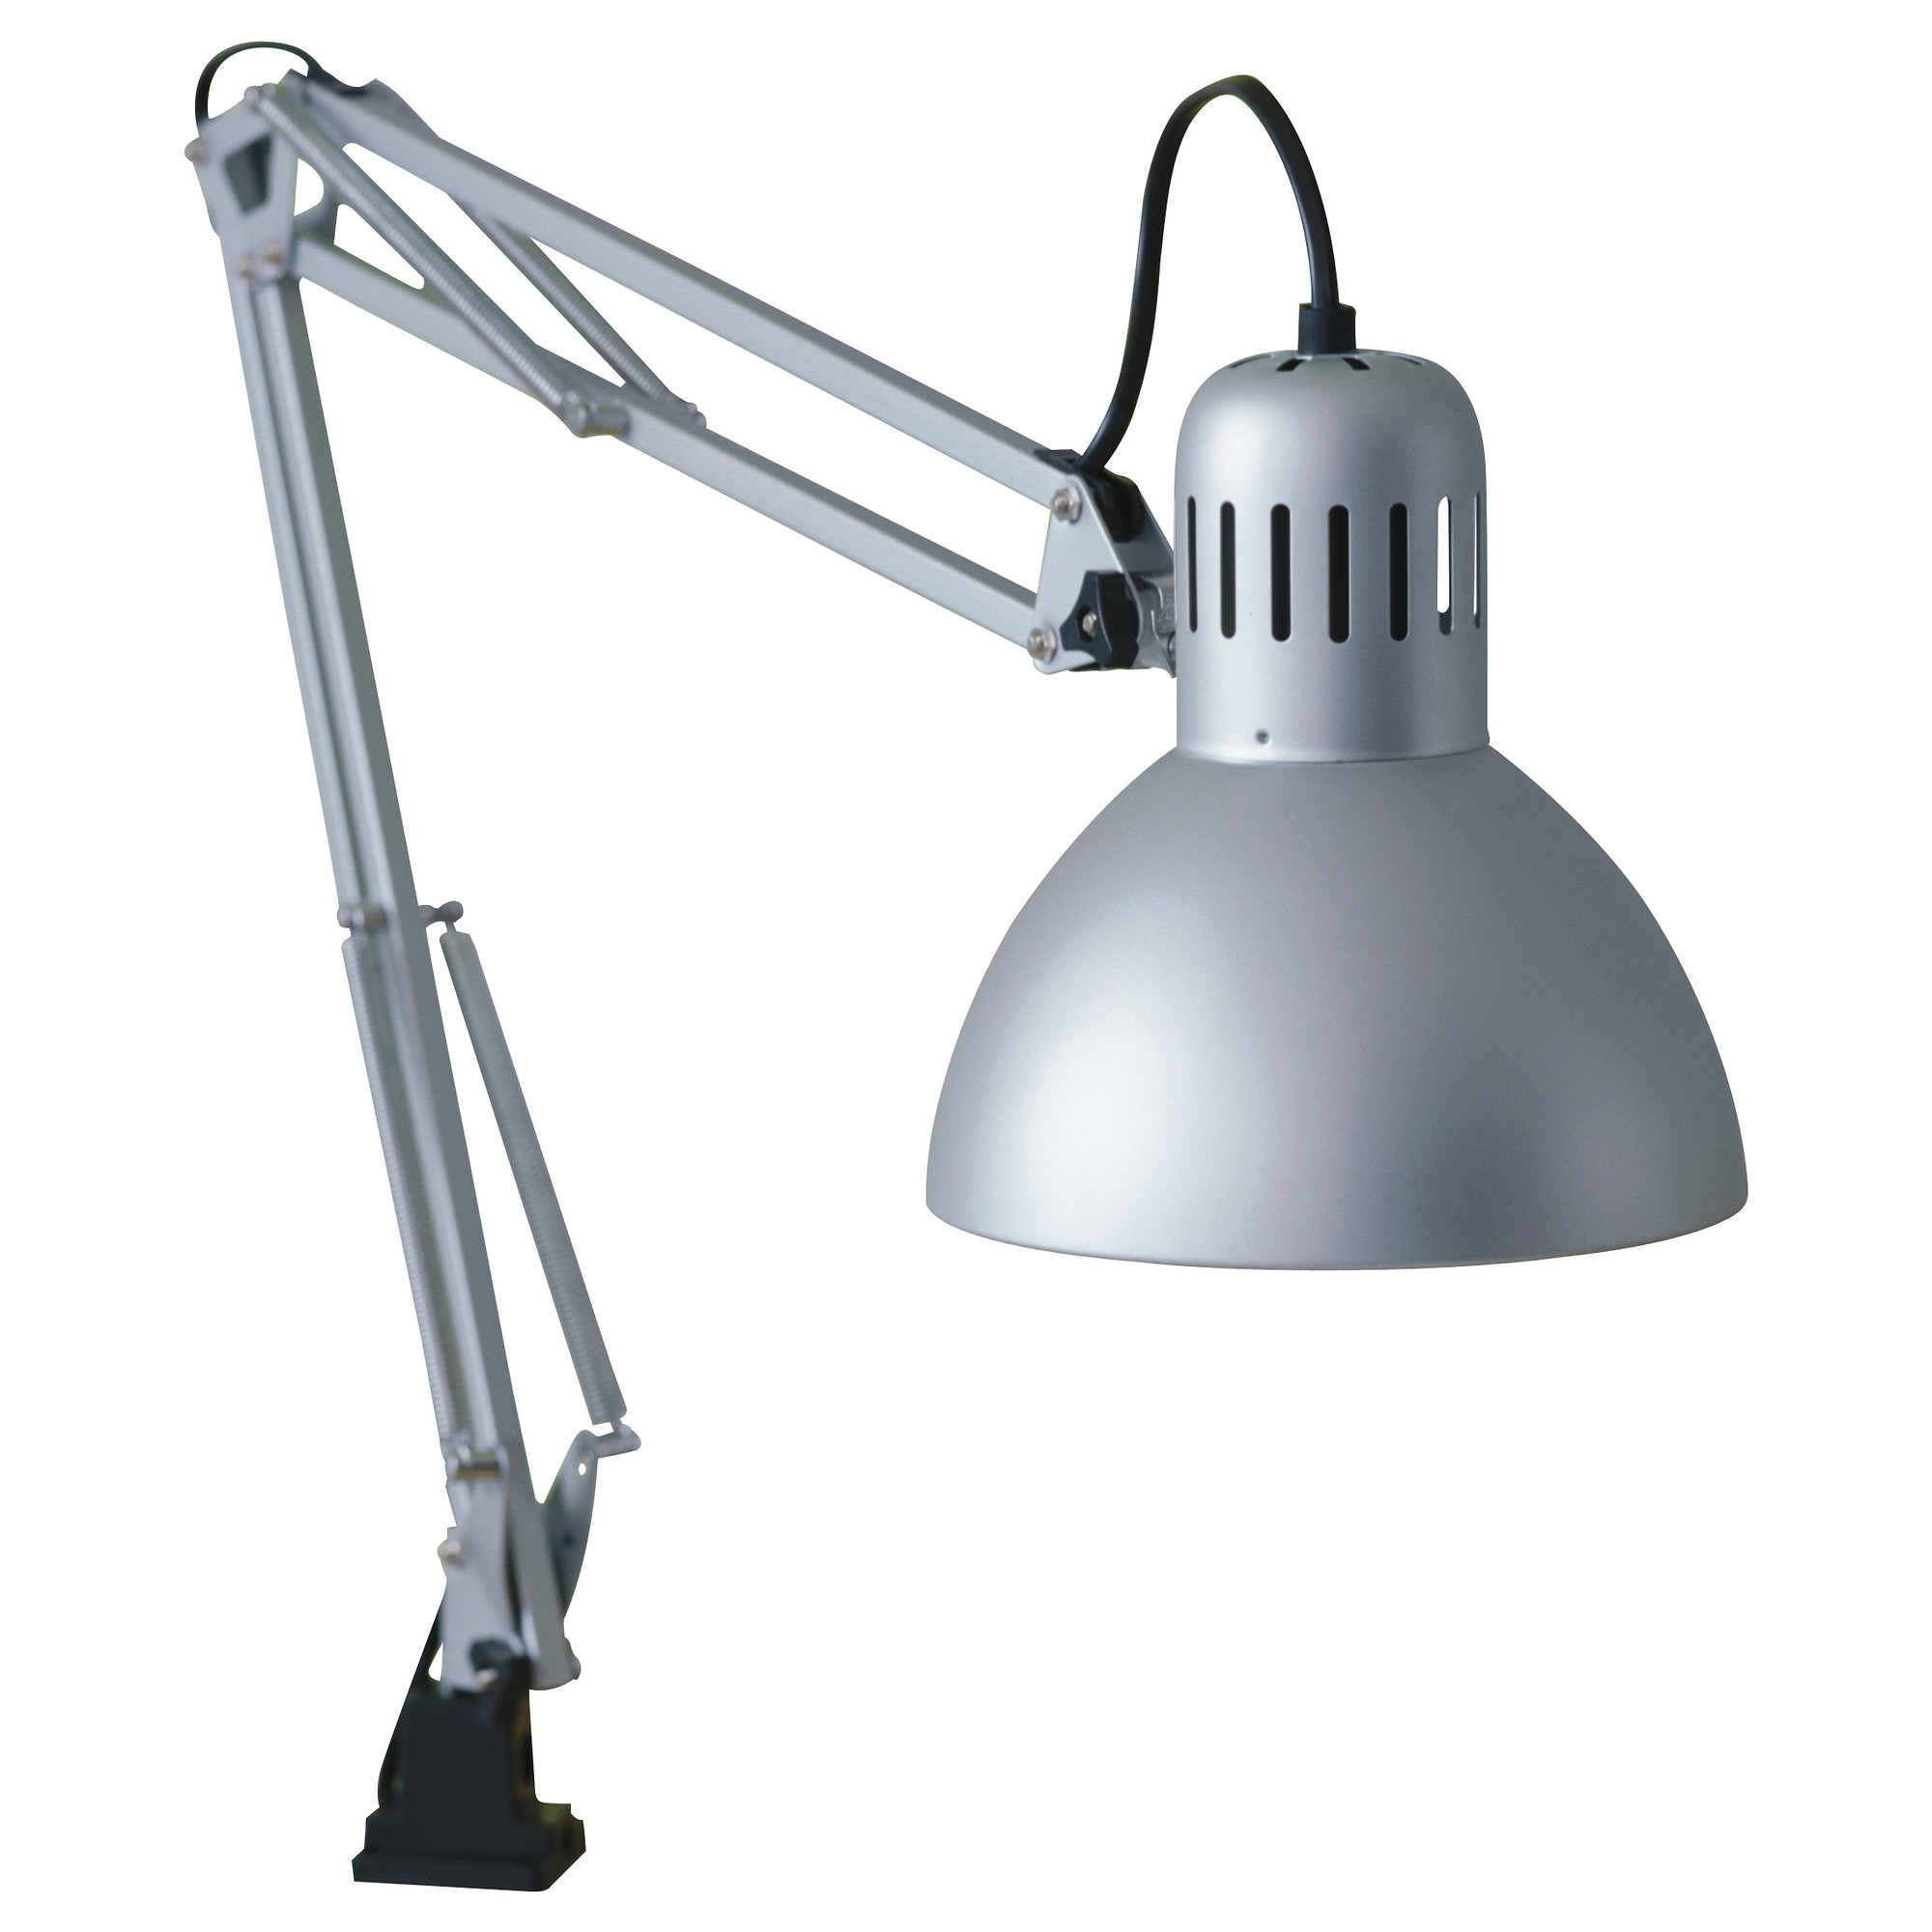 Wall Mount Office Lamp : Wall mounted desk lamp - 10 things to know before installing Warisan Lighting